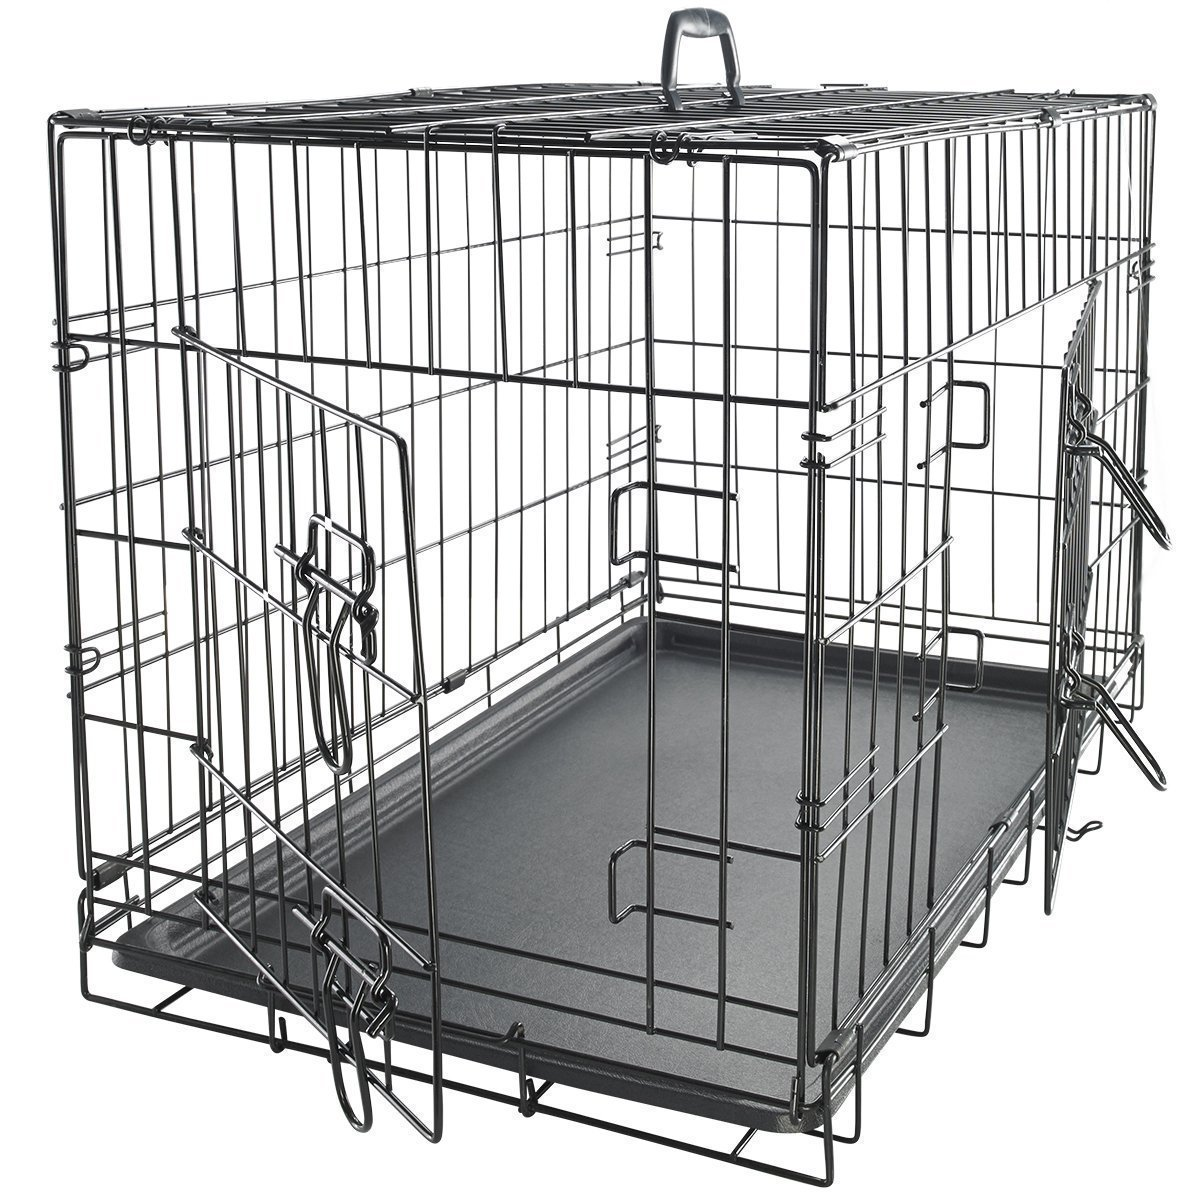 Crate Not Induced in Kit  - Example OxGord Crate.